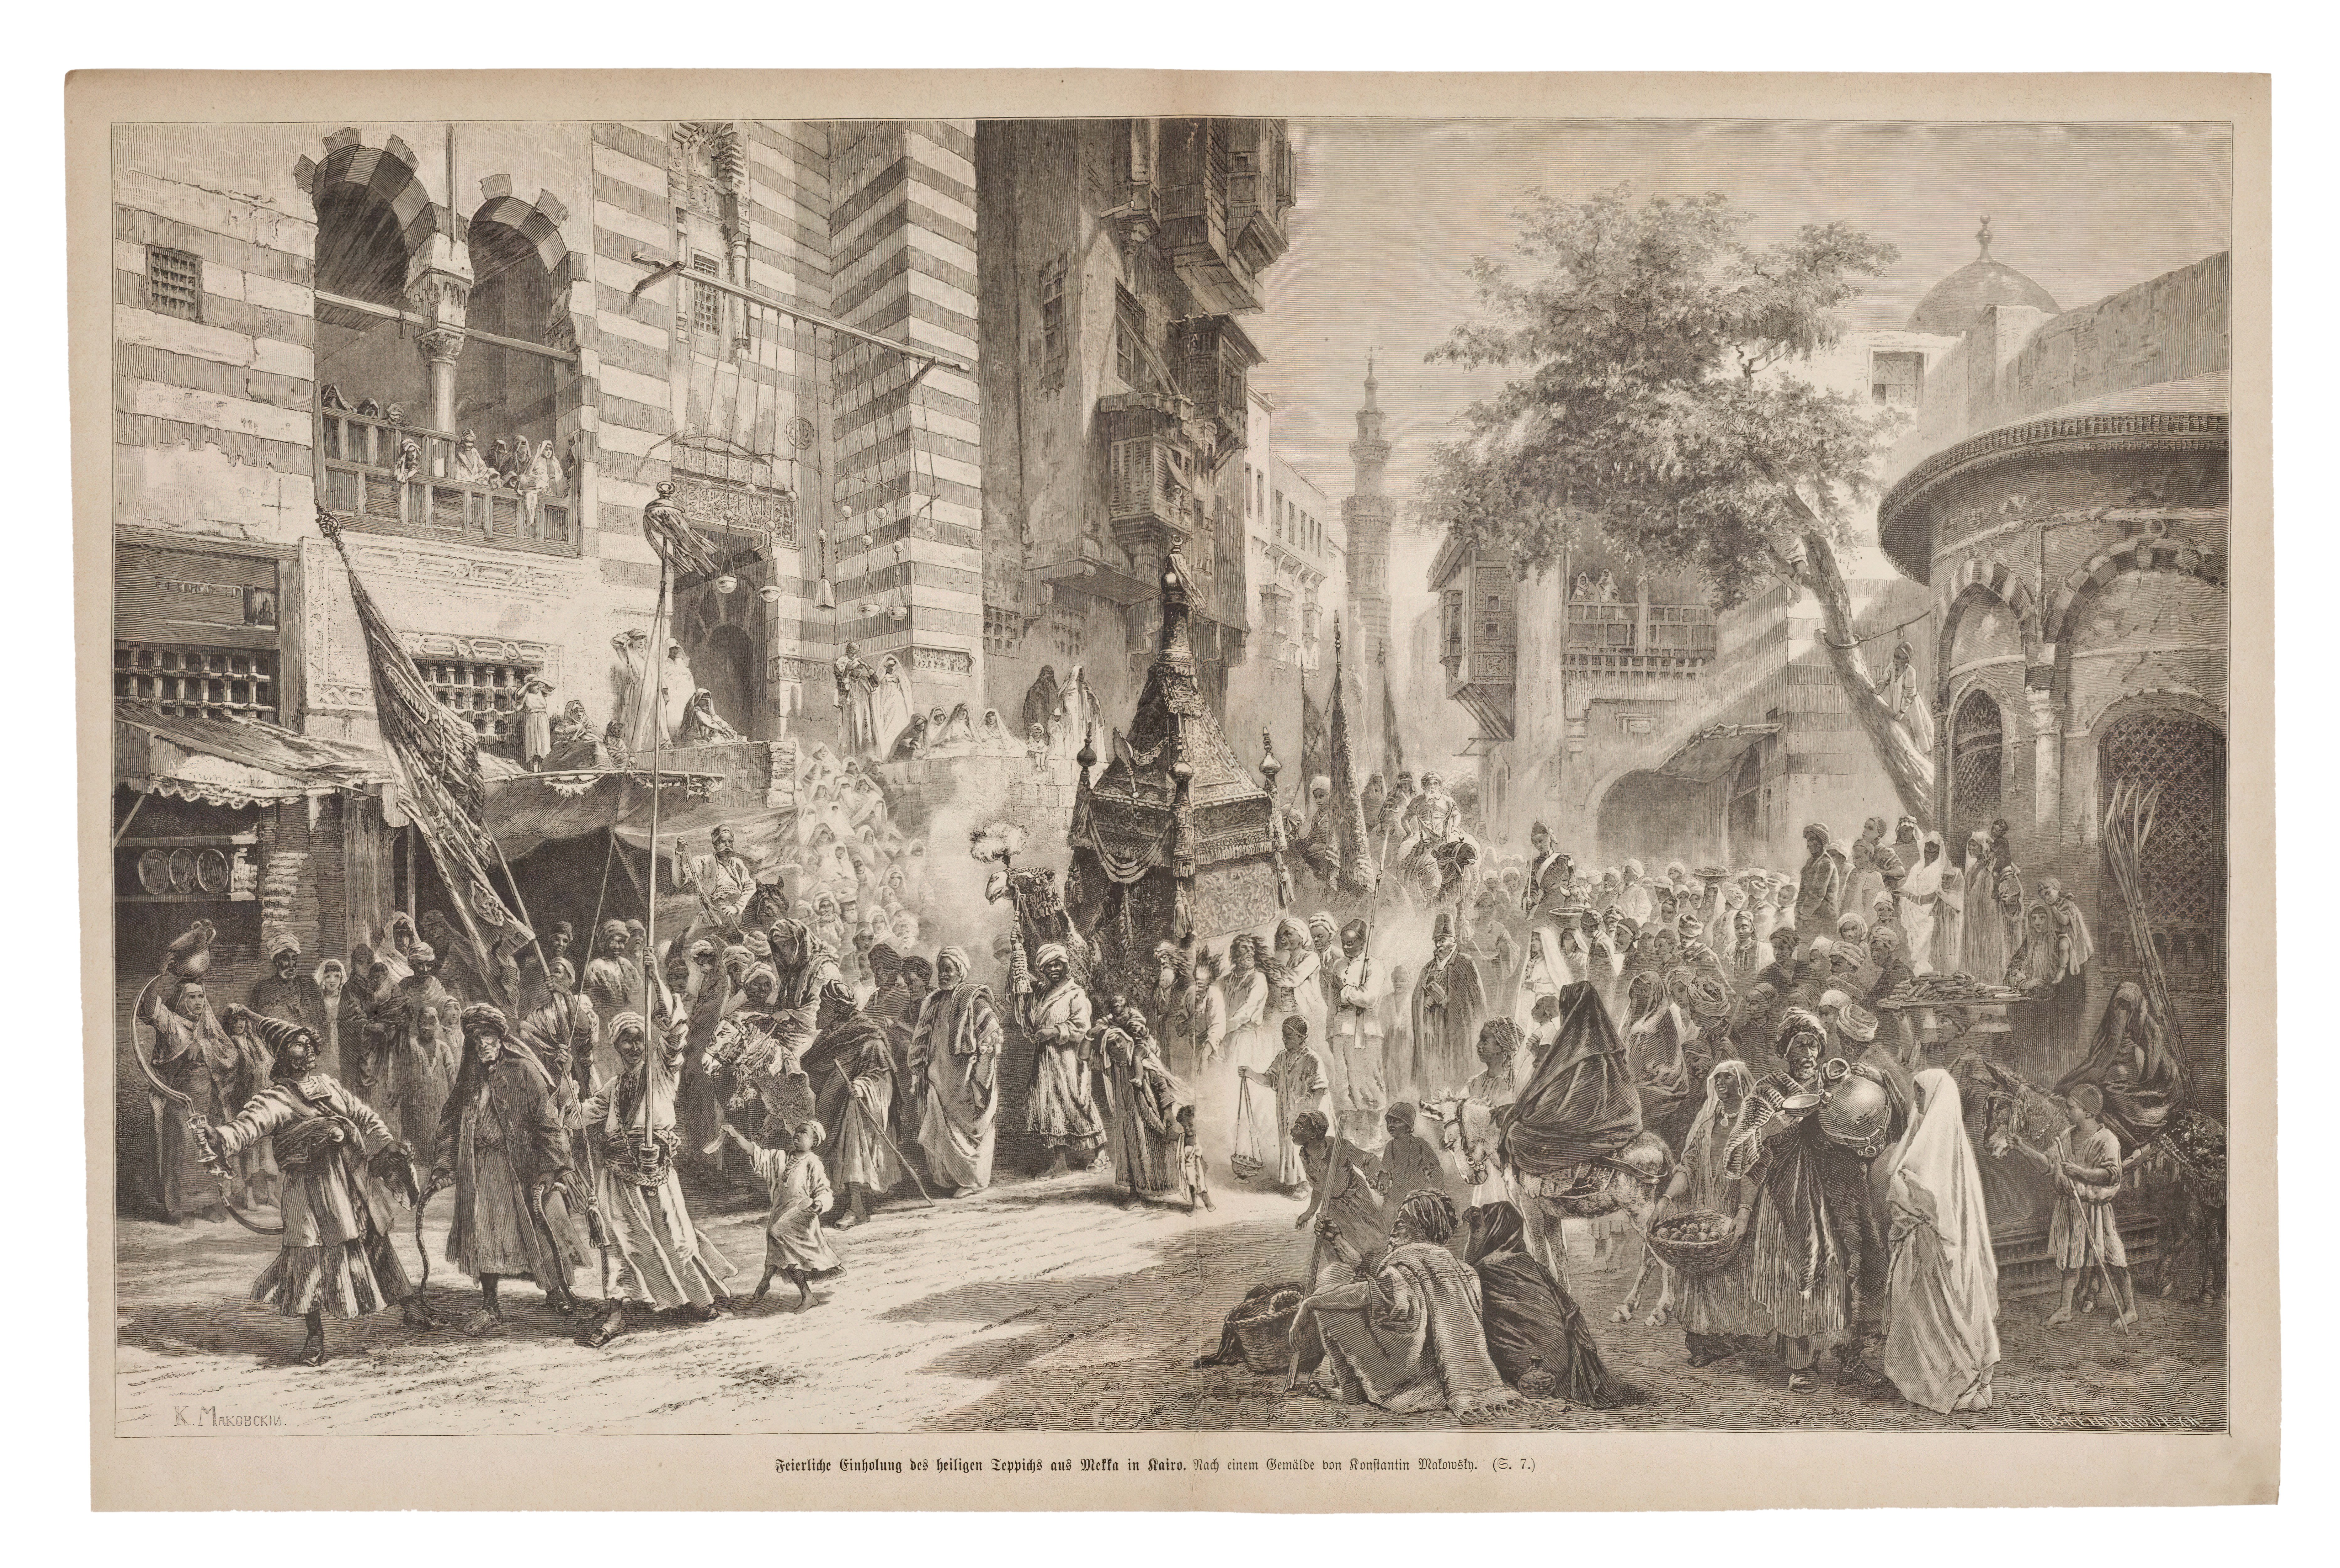 'The return of the Mahmal from Mecca to Cairo' Wood engraving by R. Brendamour after a painting by Konstantin Makowsky